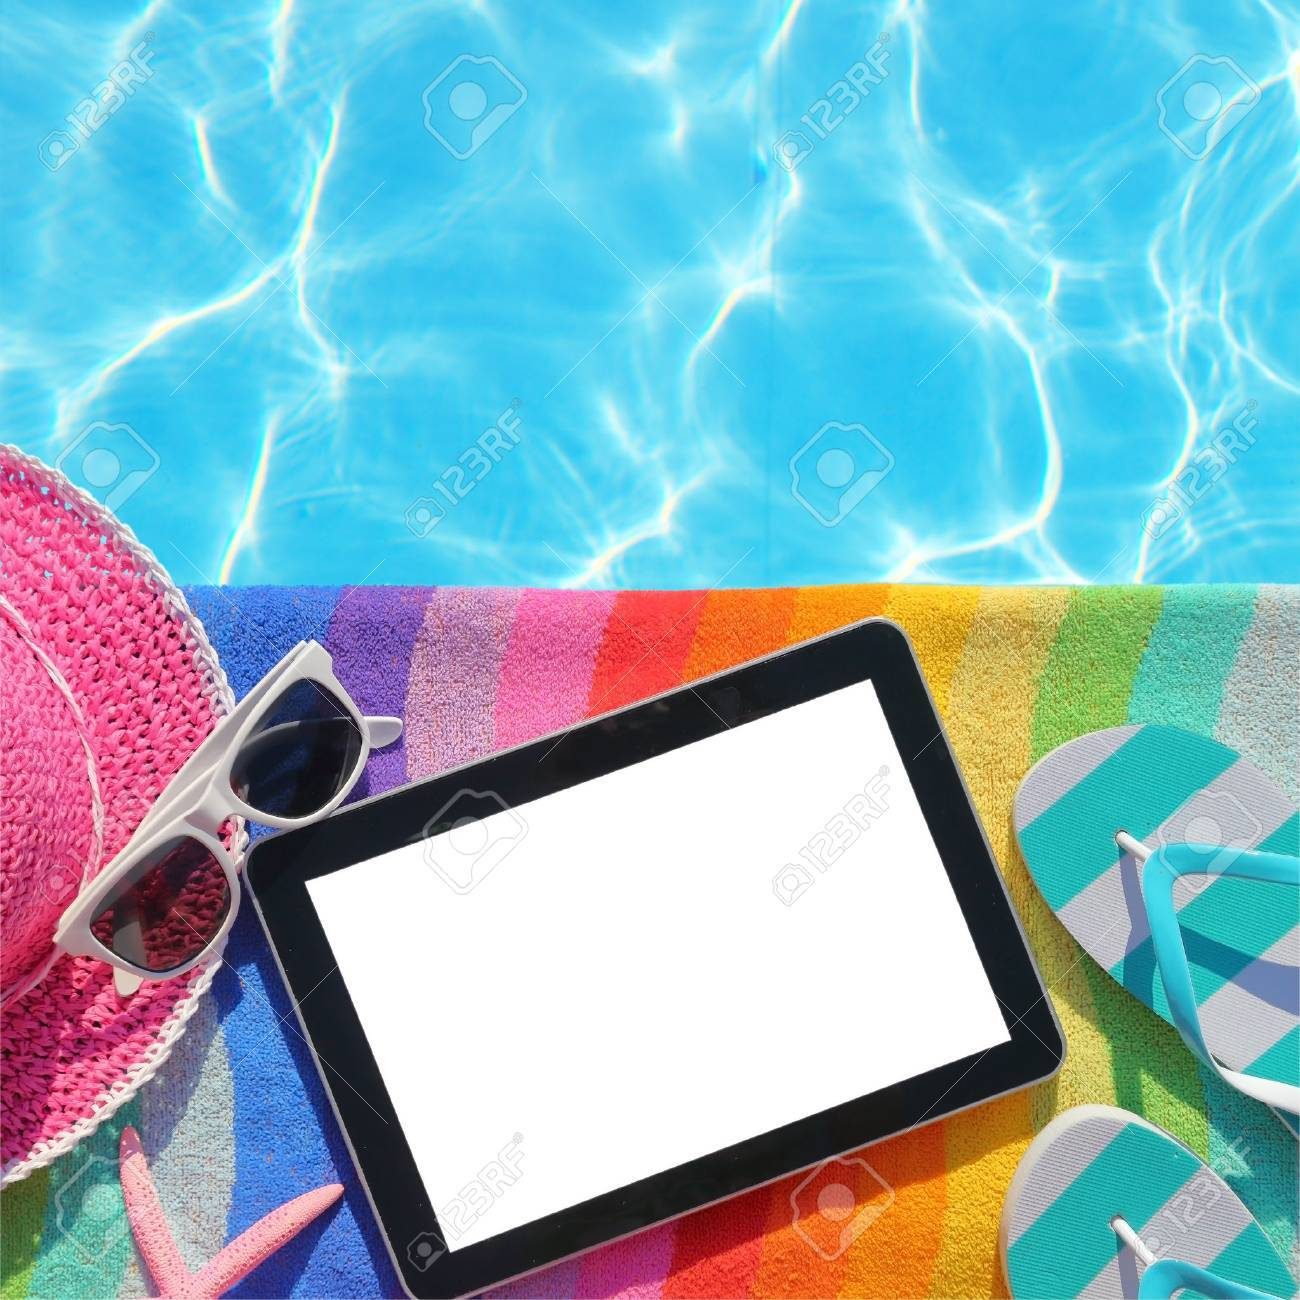 Tablet with blank screen by poolside with beach accessories Stock Photo - 30688933